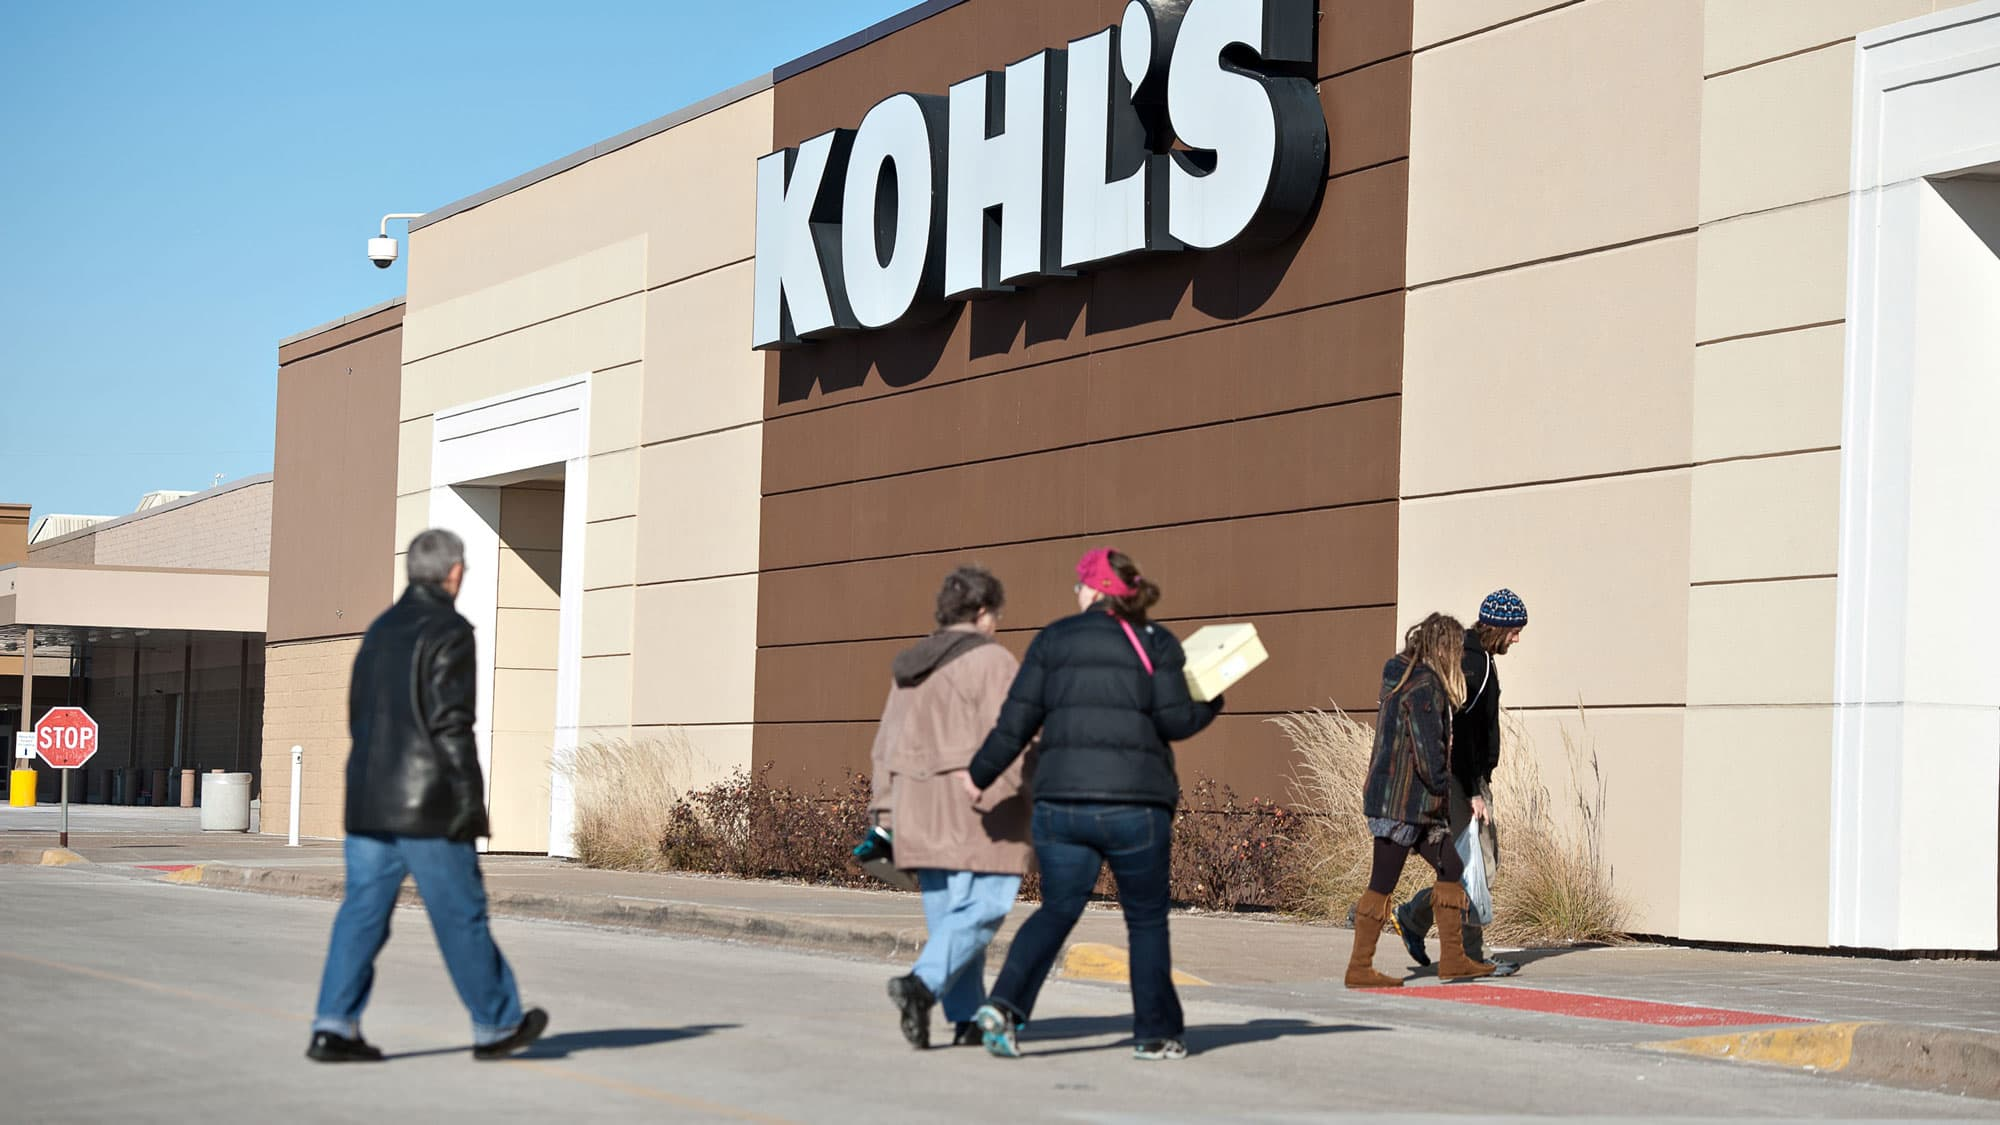 Kohl's shares tumble on weak holiday sales